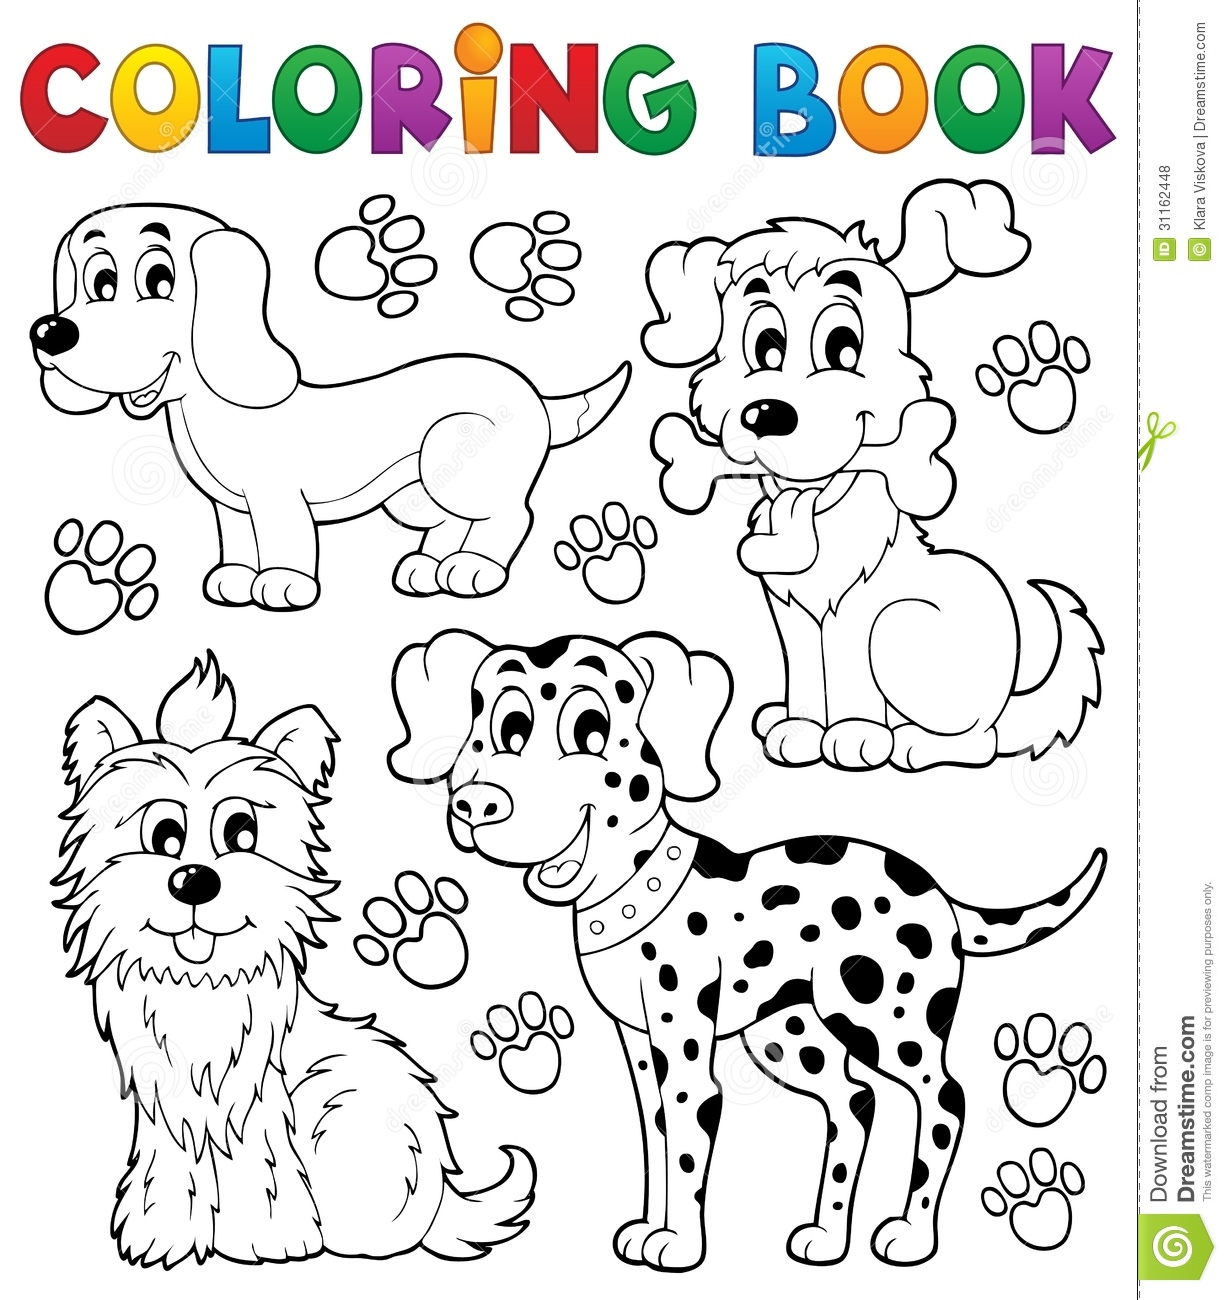 Download Coloring Book Dog Theme 5 Stock Vector Illustration Of Looking